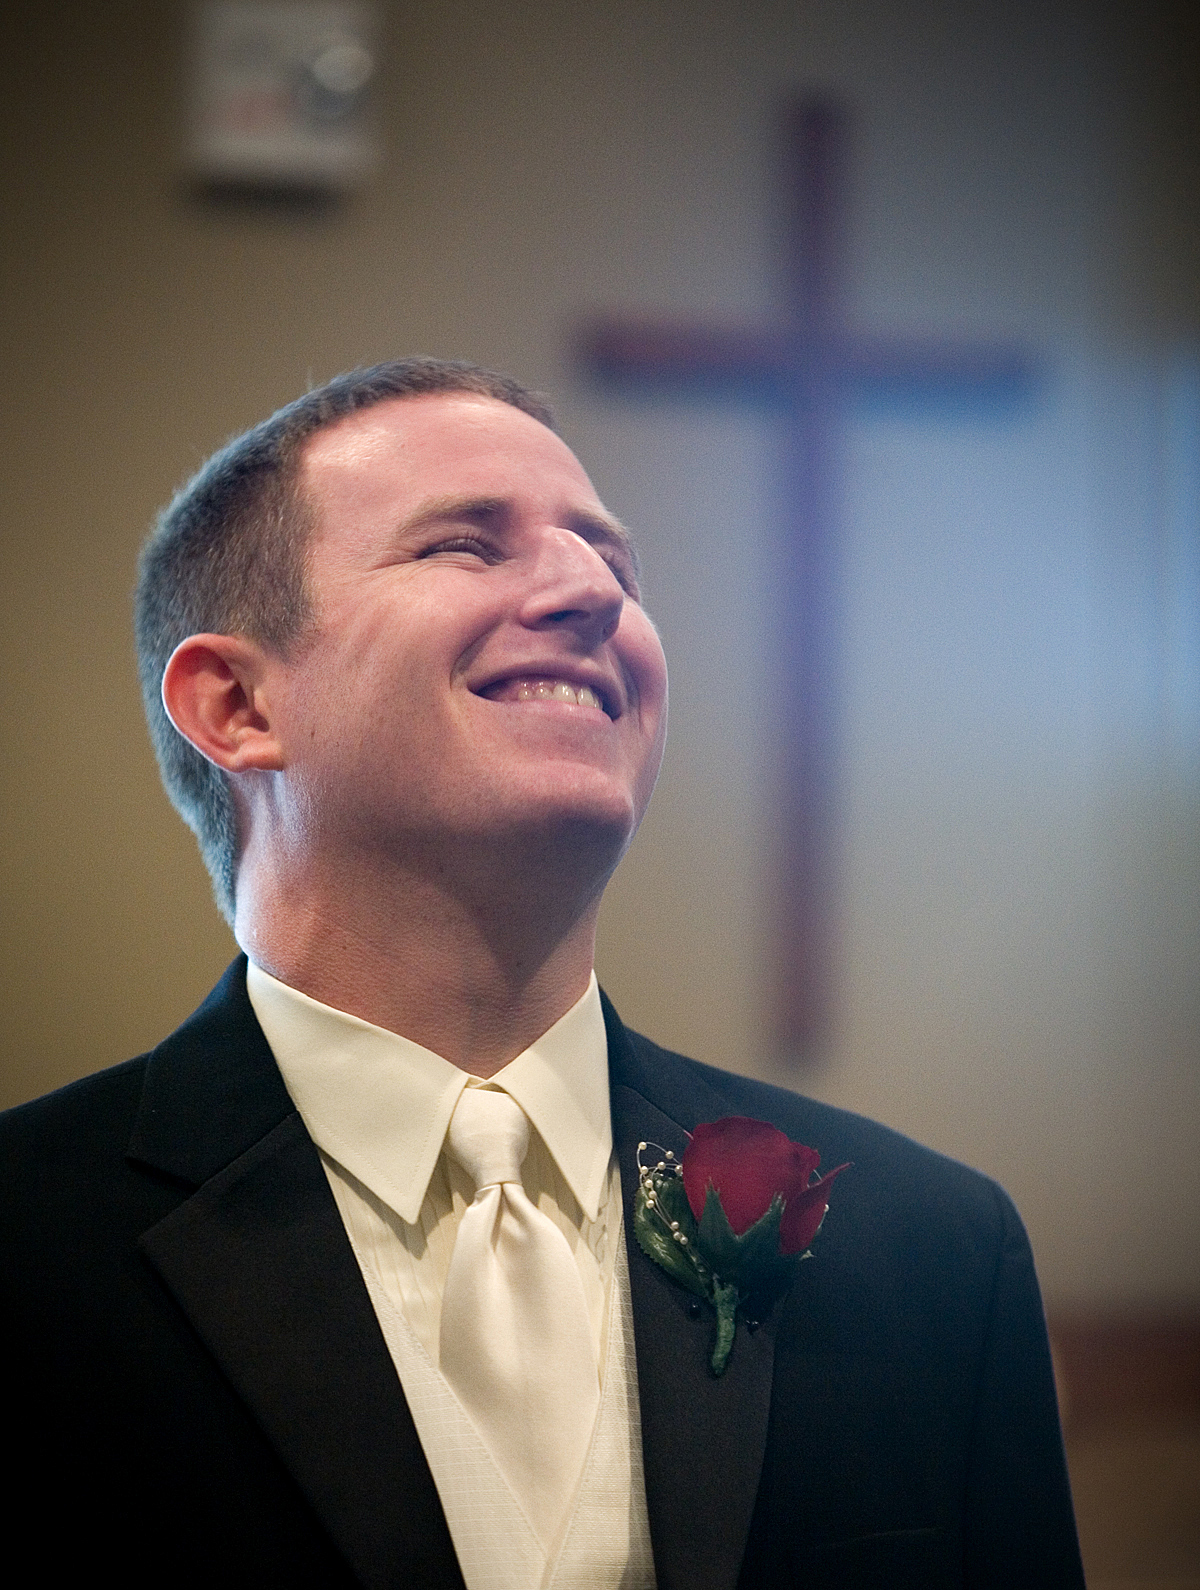 white, black, Groom, Waiting, Church, Laughter, Cross, Pheifer photography llc